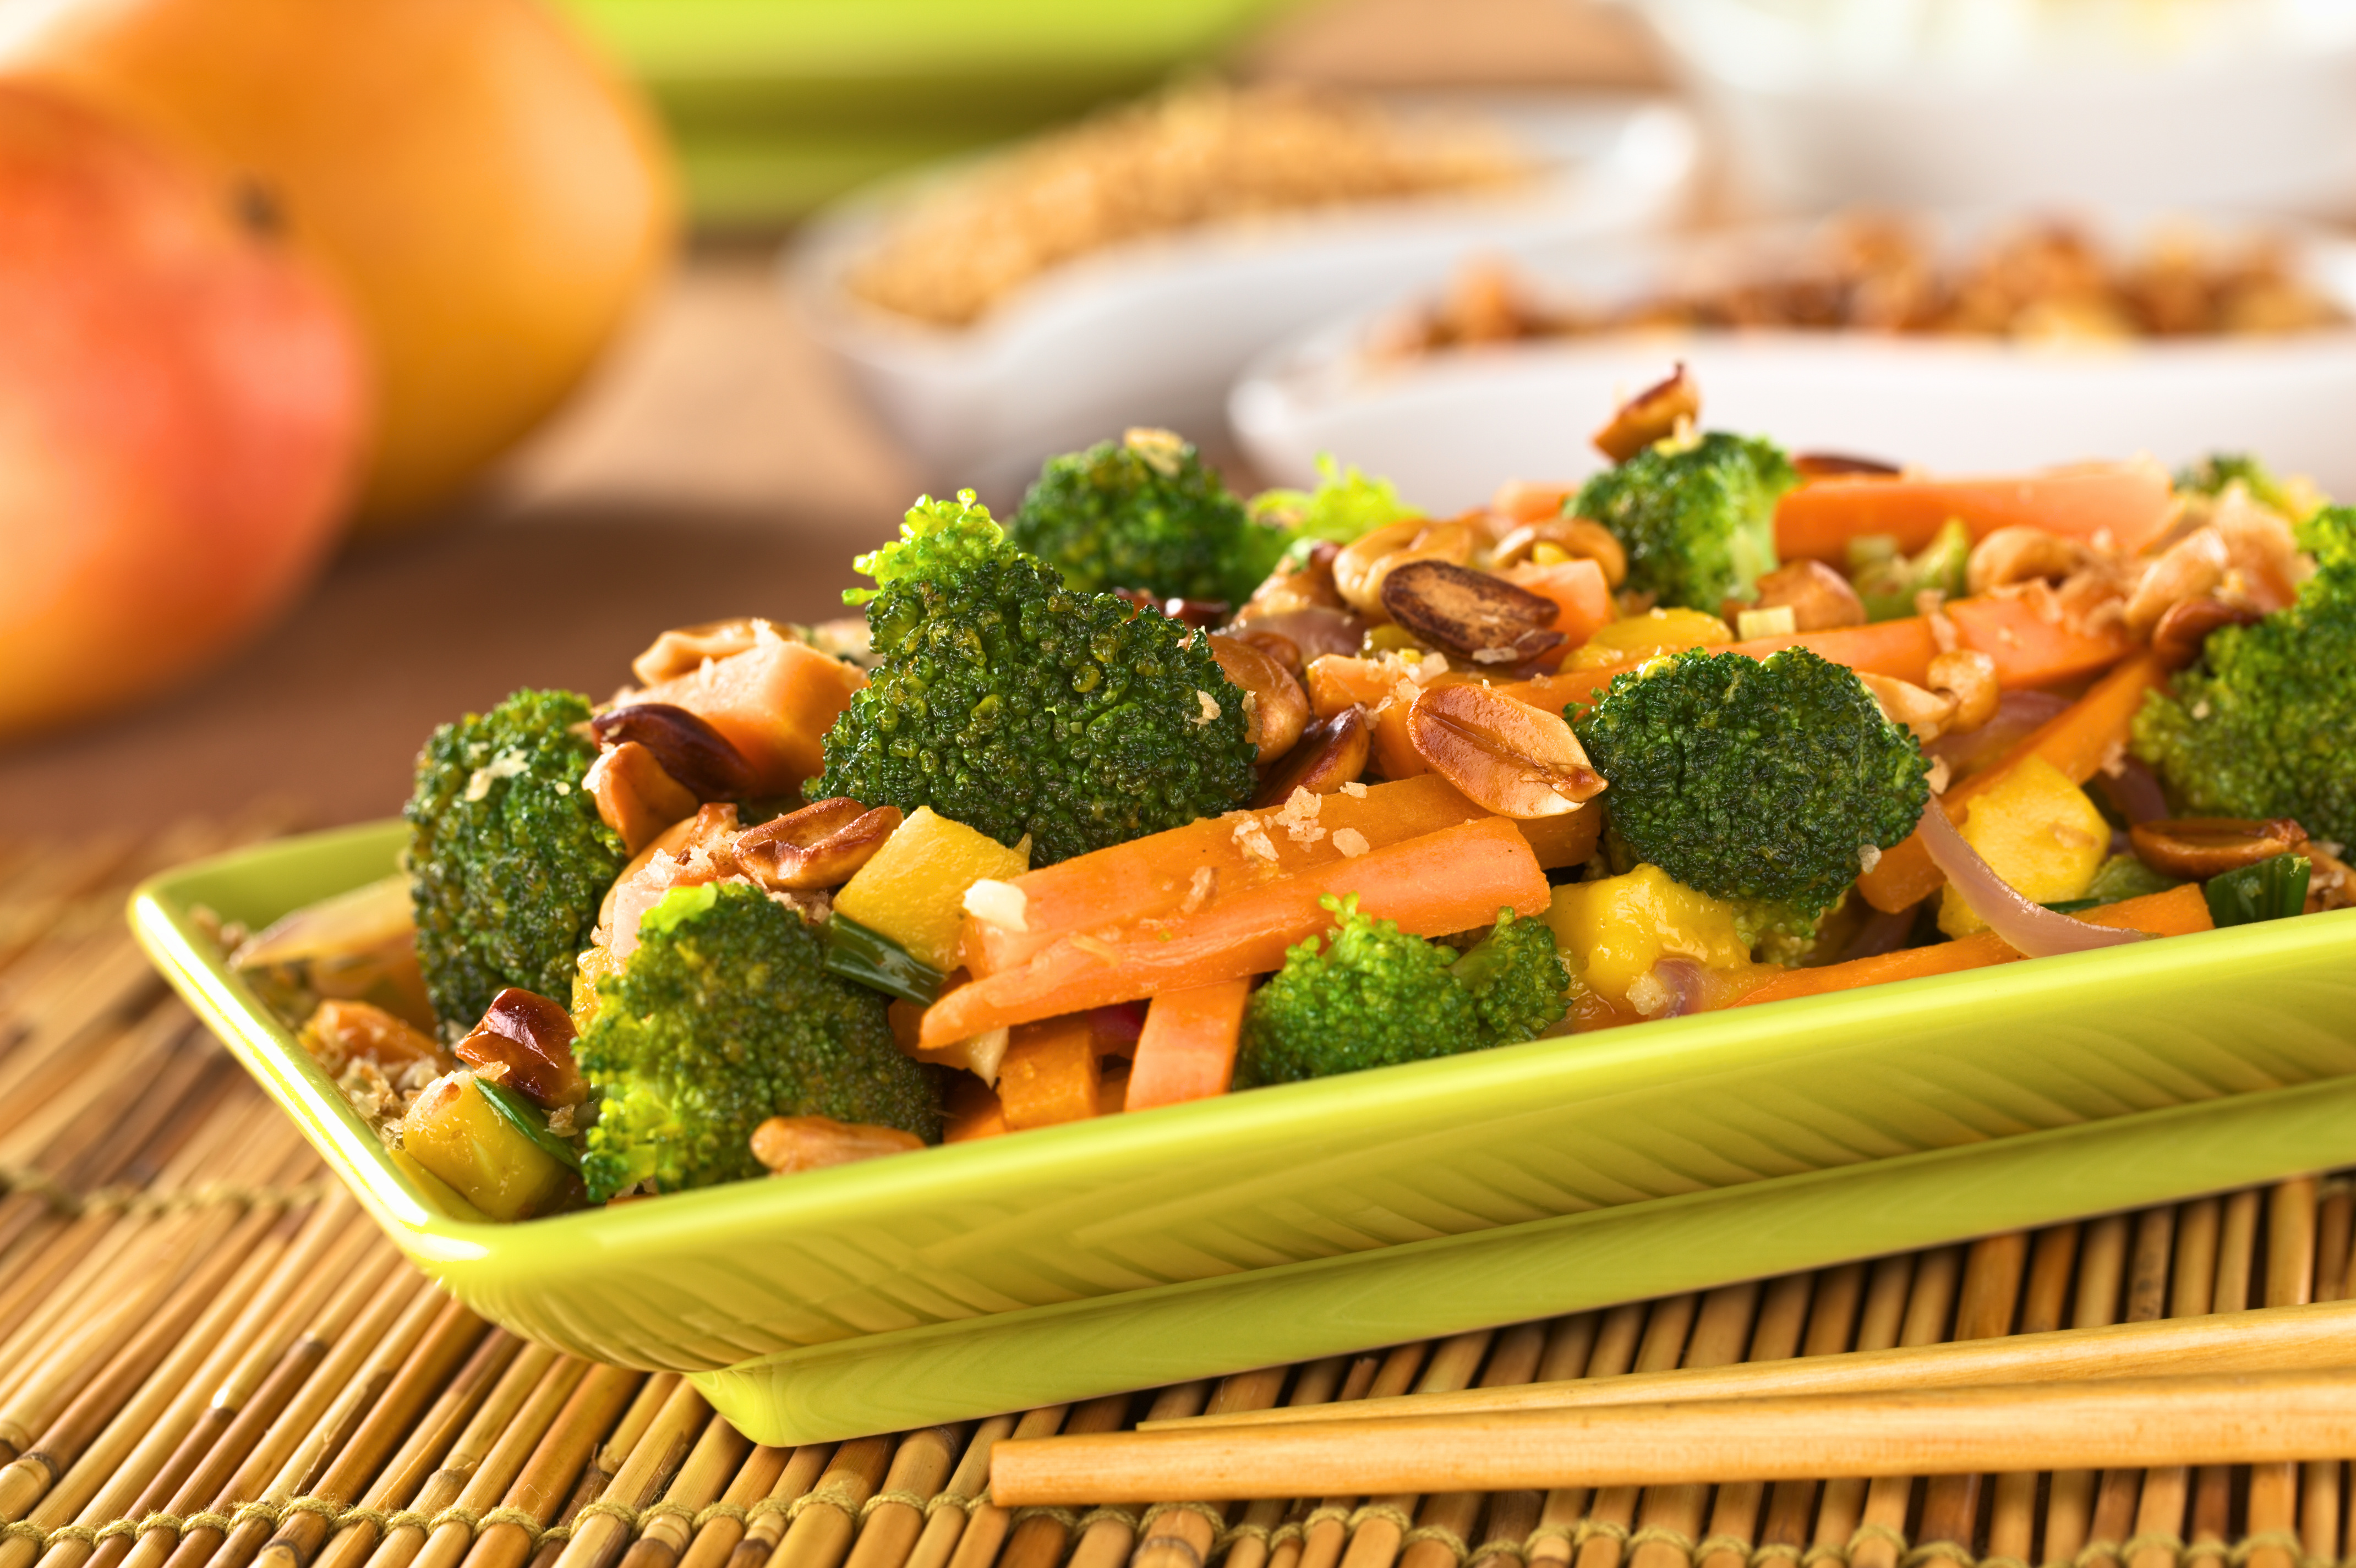 Vegetarian stir-fry Thai-style with broccoli, carrot, onion, mango with fried coconut flakes and peanuts (Selective Focus, Focus on the broccoli in the middle of the image)